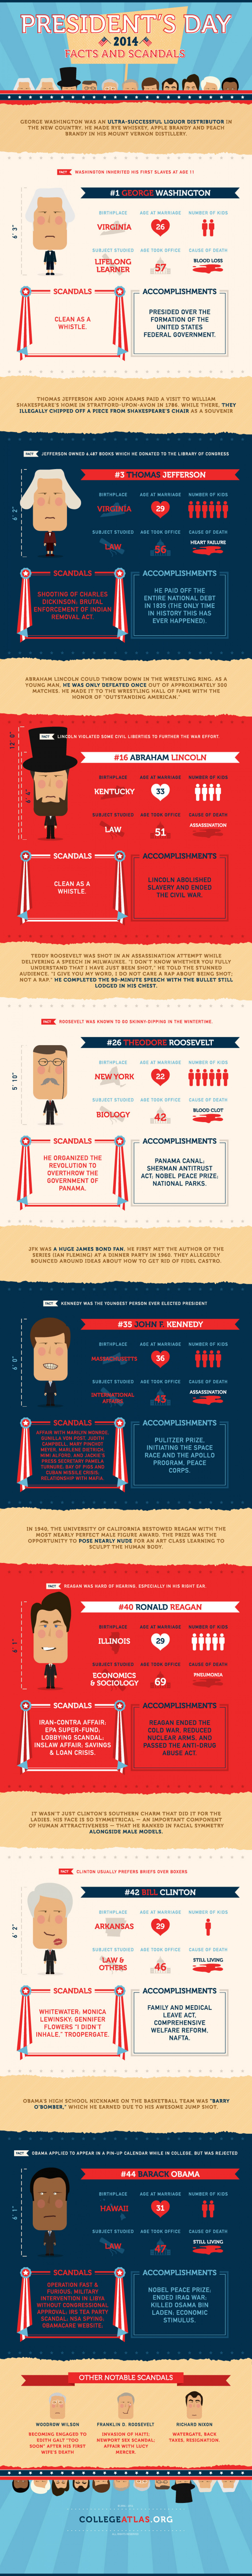 President's Day: Facts and Scandals Infographic